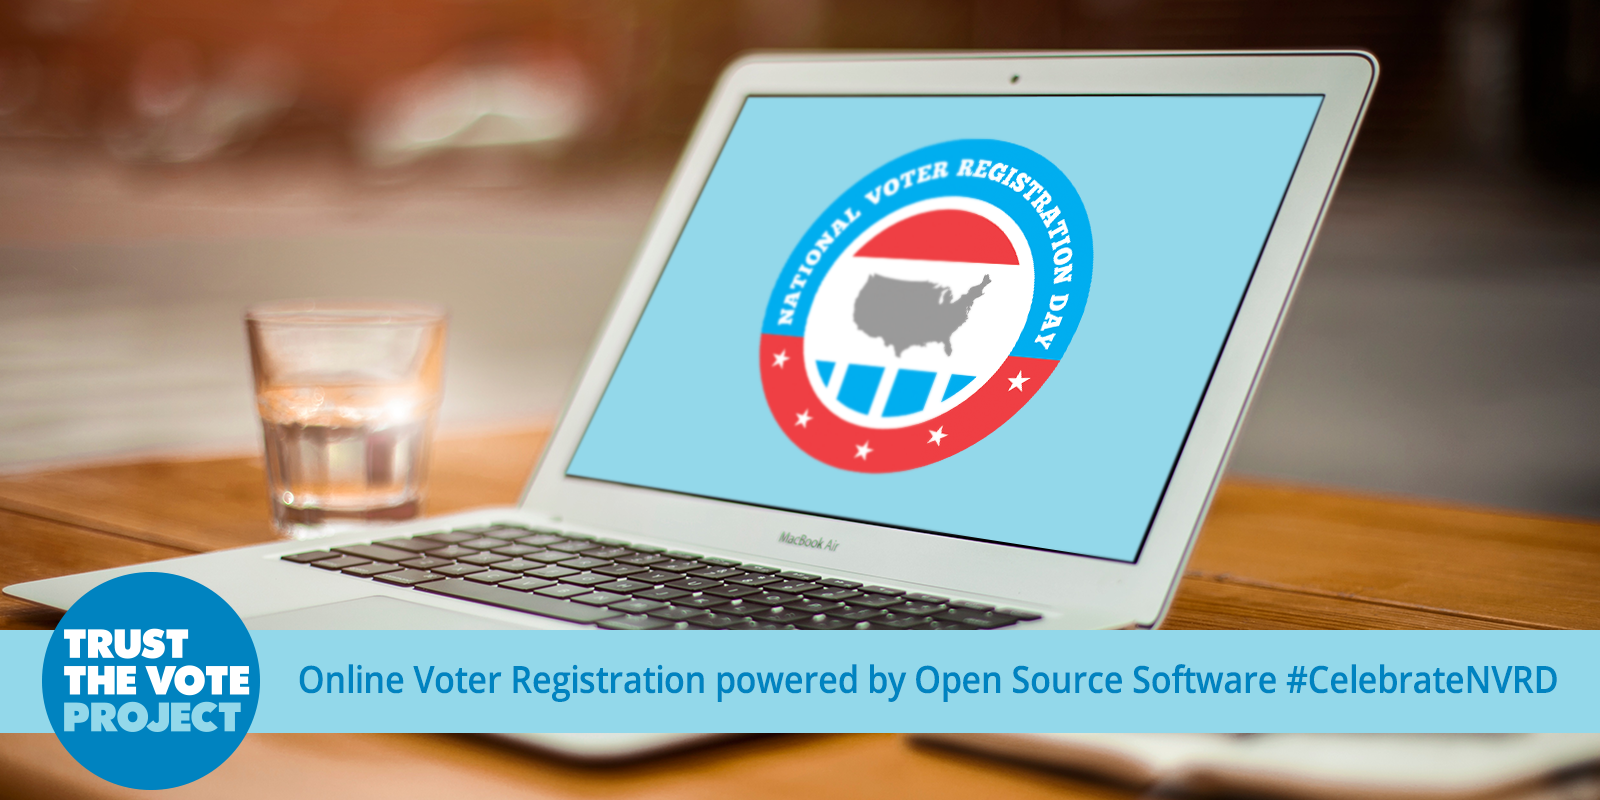 The TrustTheVote Project and the OSET Foundation are proud supporters of National Voter Registration Day.